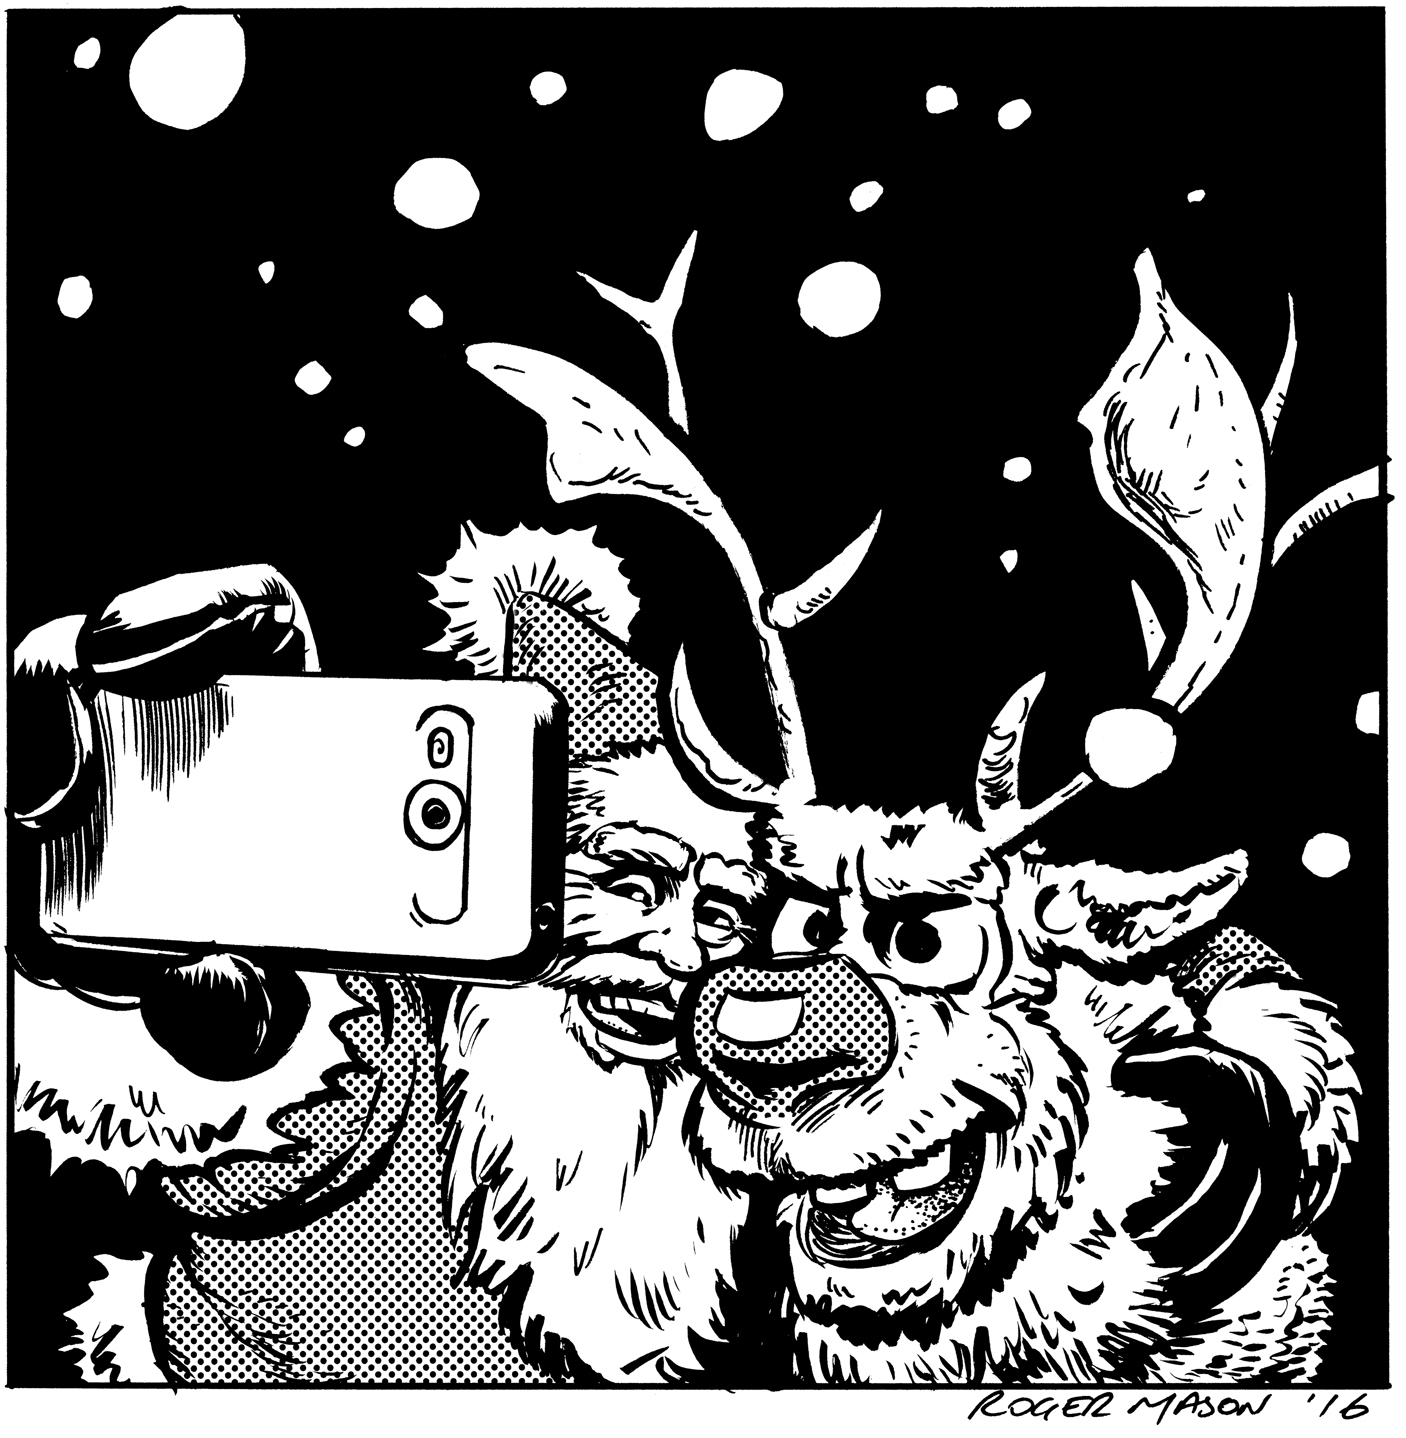 Santa and Rudolf selfie. Christmas card by Roger Mason